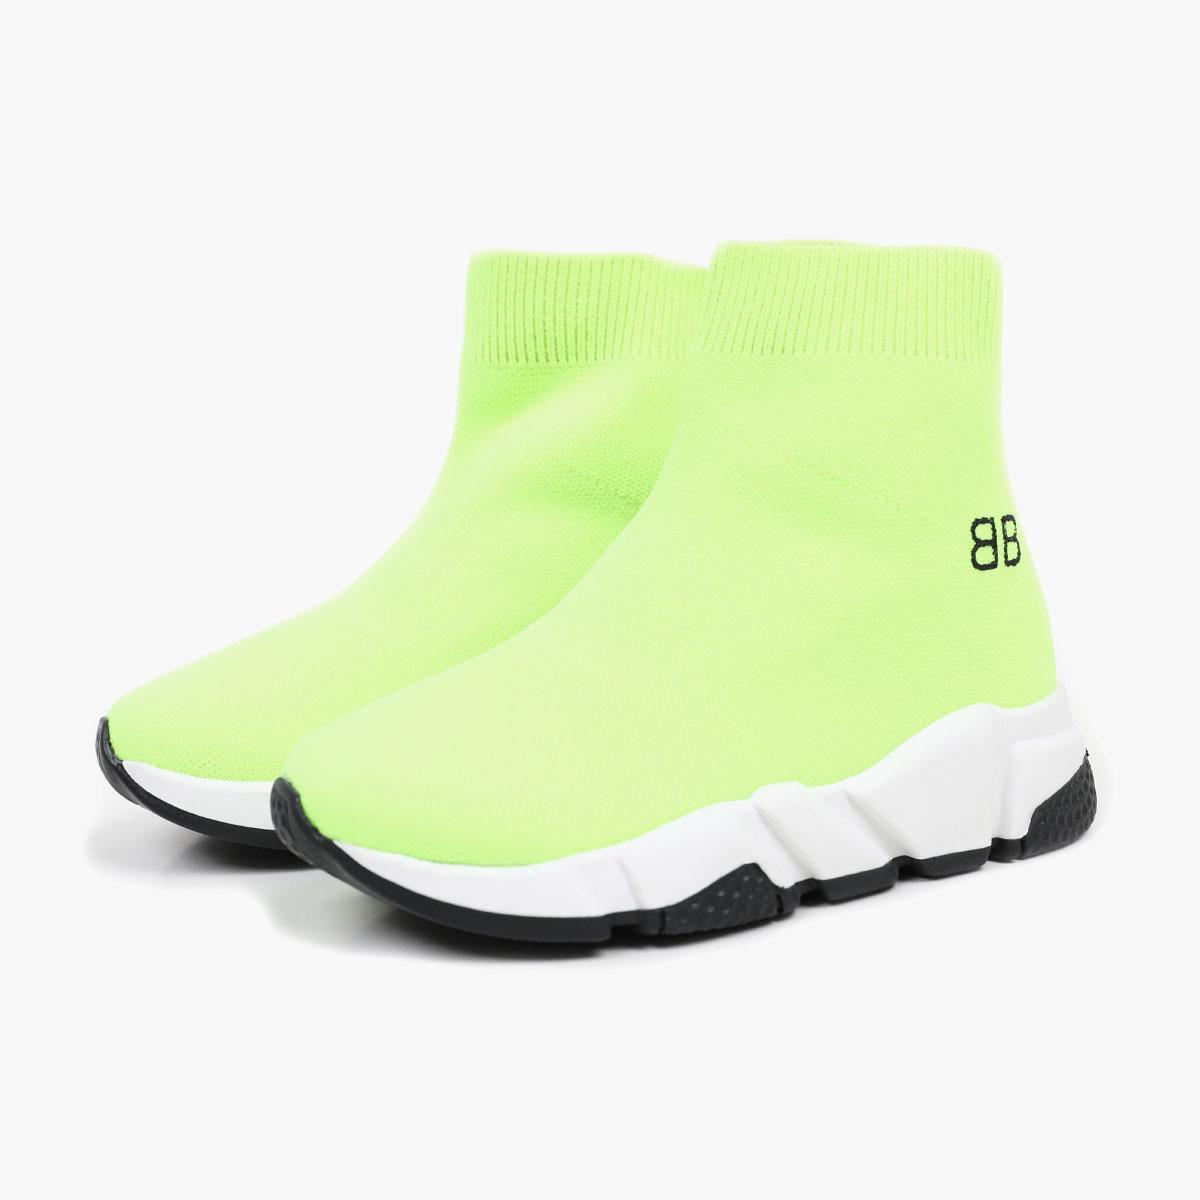 kid shoe black youth boy sneakers B letter + neon green sole boutique girl fabric slip on boots baby boy walking toddlers Eu 24-35